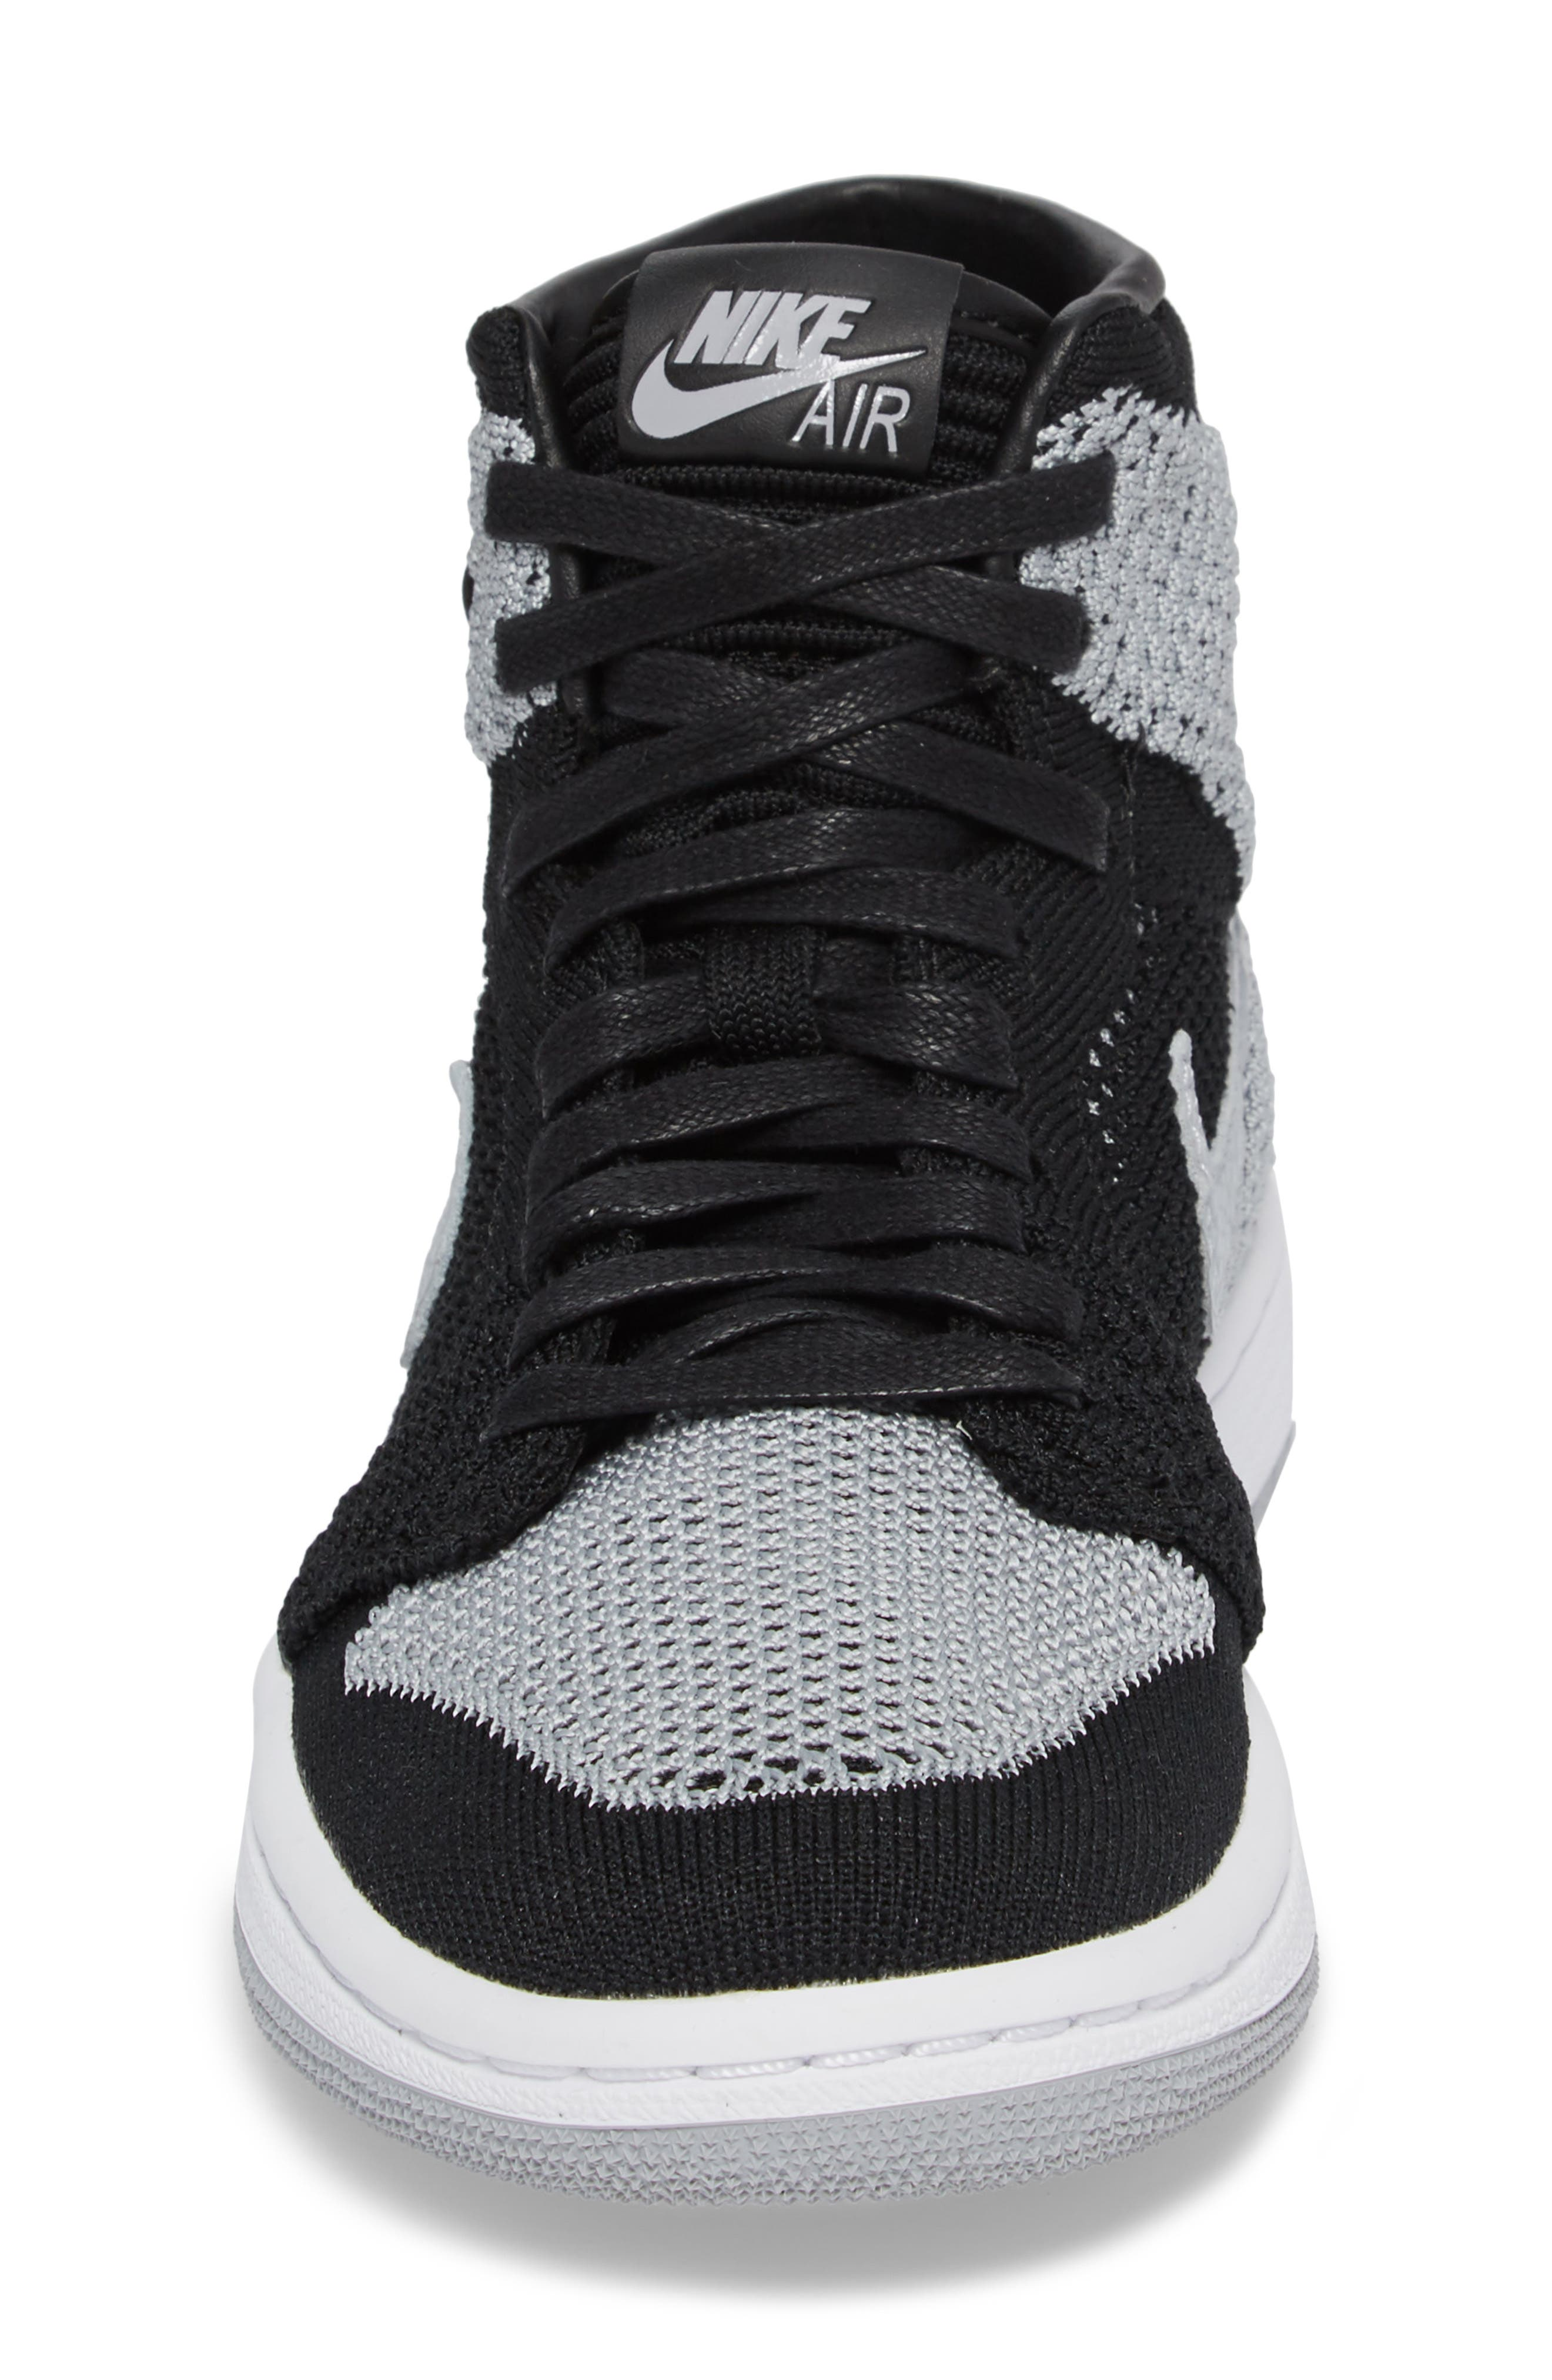 Nike Air Jordan 1 Retro High Flyknit Sneaker,                             Alternate thumbnail 4, color,                             Black/ Wolf Grey/ White